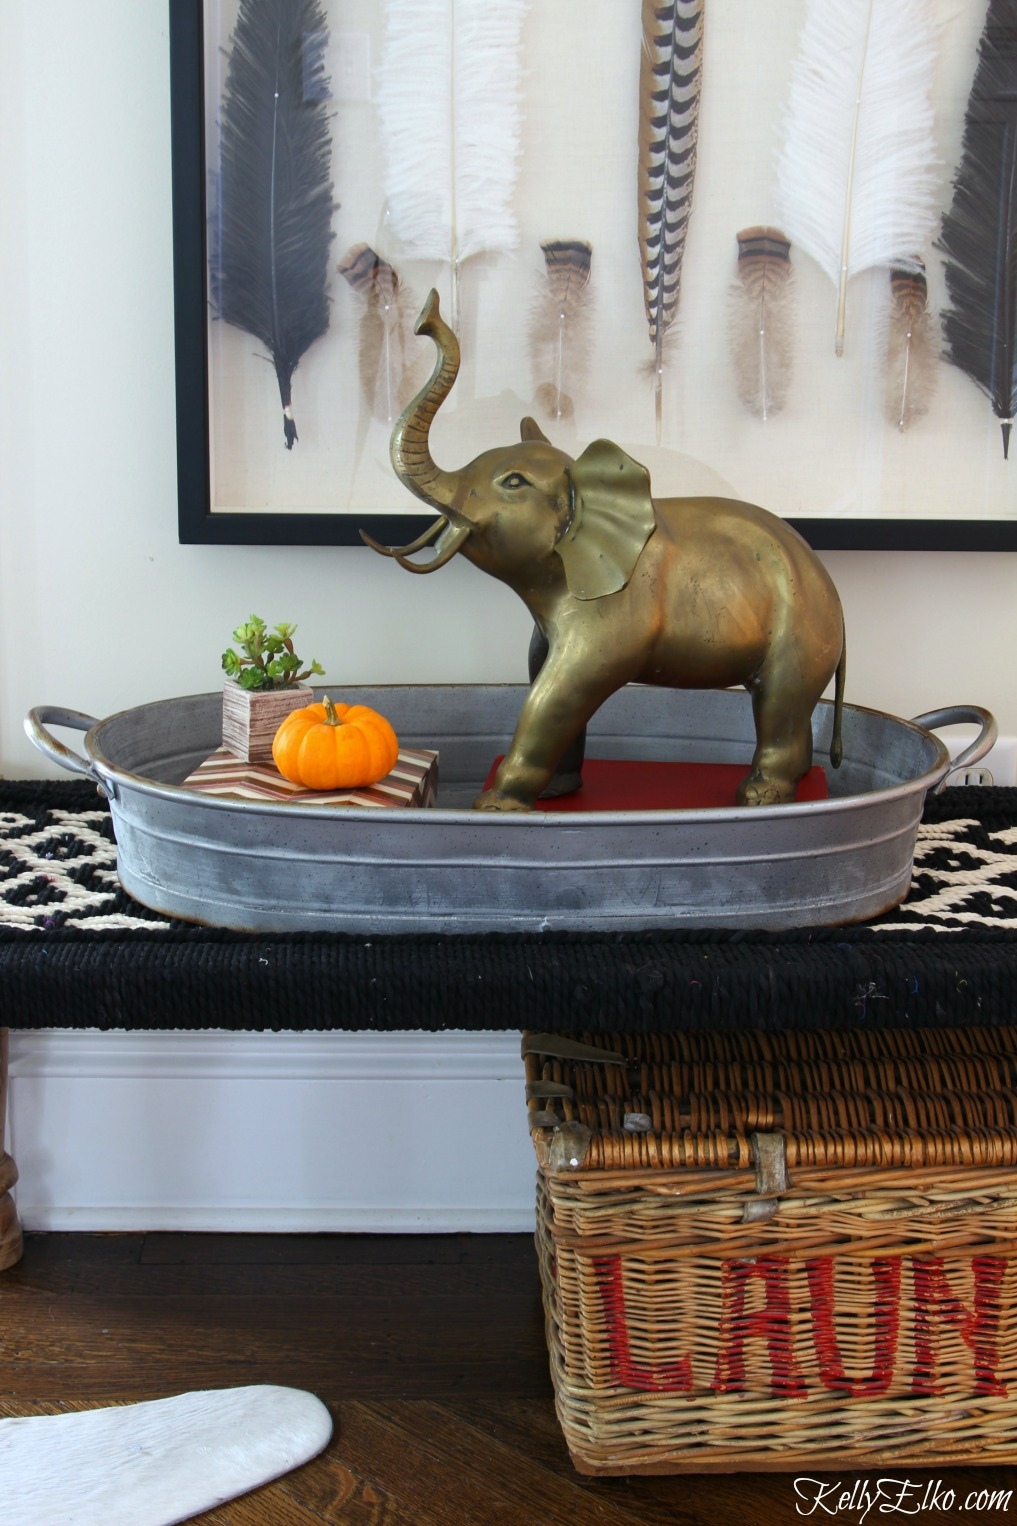 Vintage large brass elephant - brass is back and I love brass animals as home decor kellyelko.com